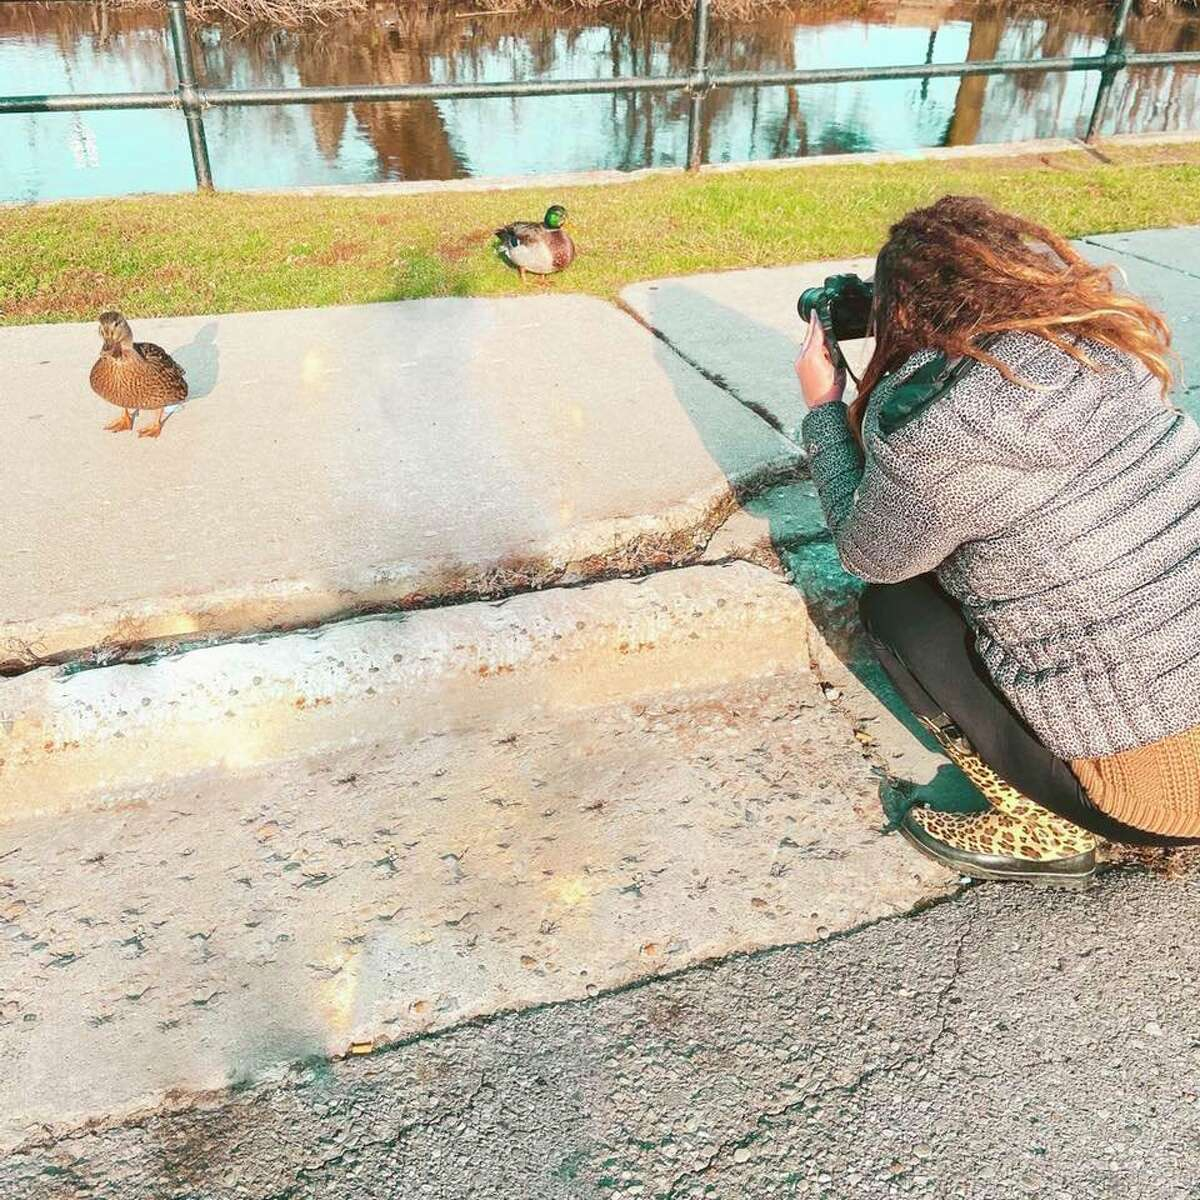 Vaughn is pictured taking a picture of a duck. As well as animals, she enjoys photographing families, nature scenes and more. (Courtesy photo)